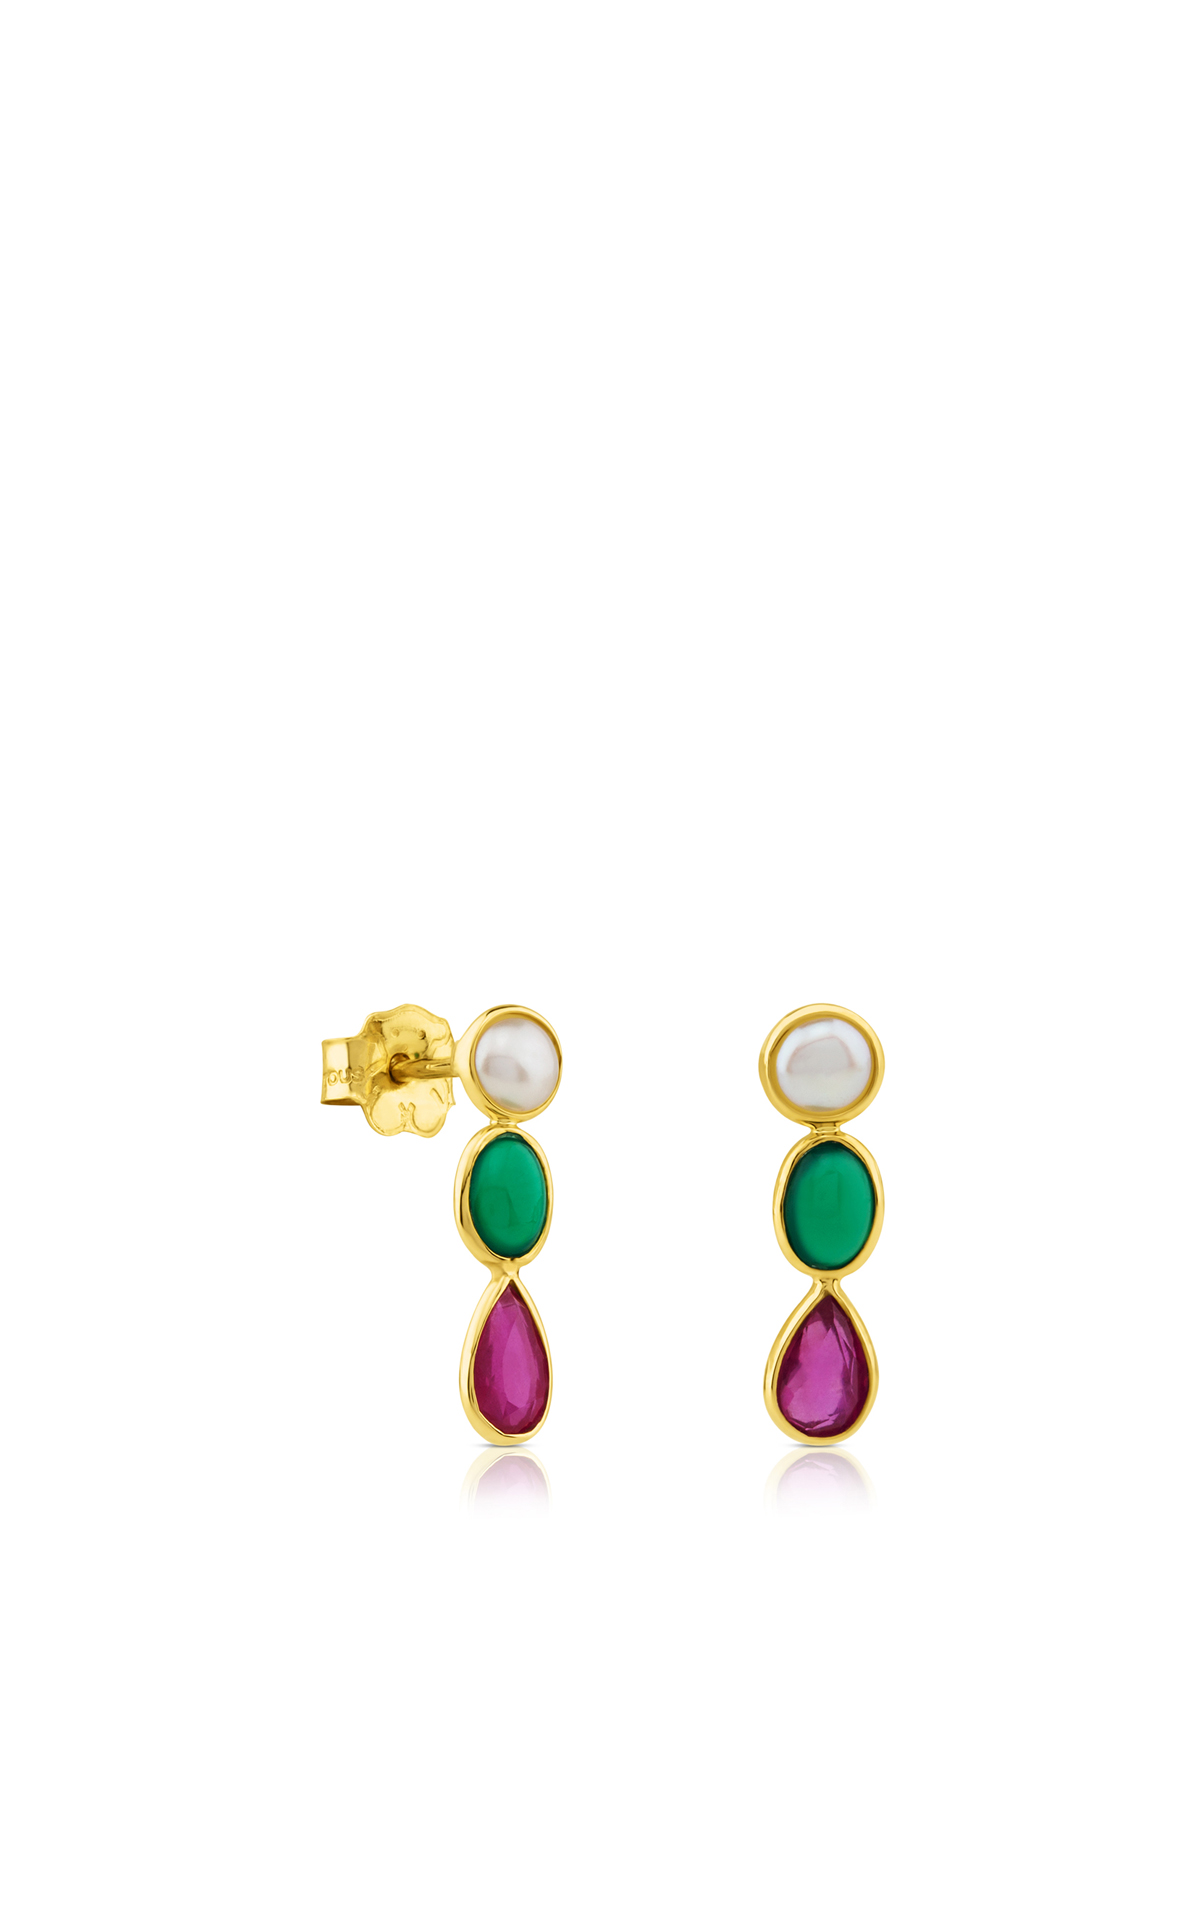 Golden earrings with three stones Tous